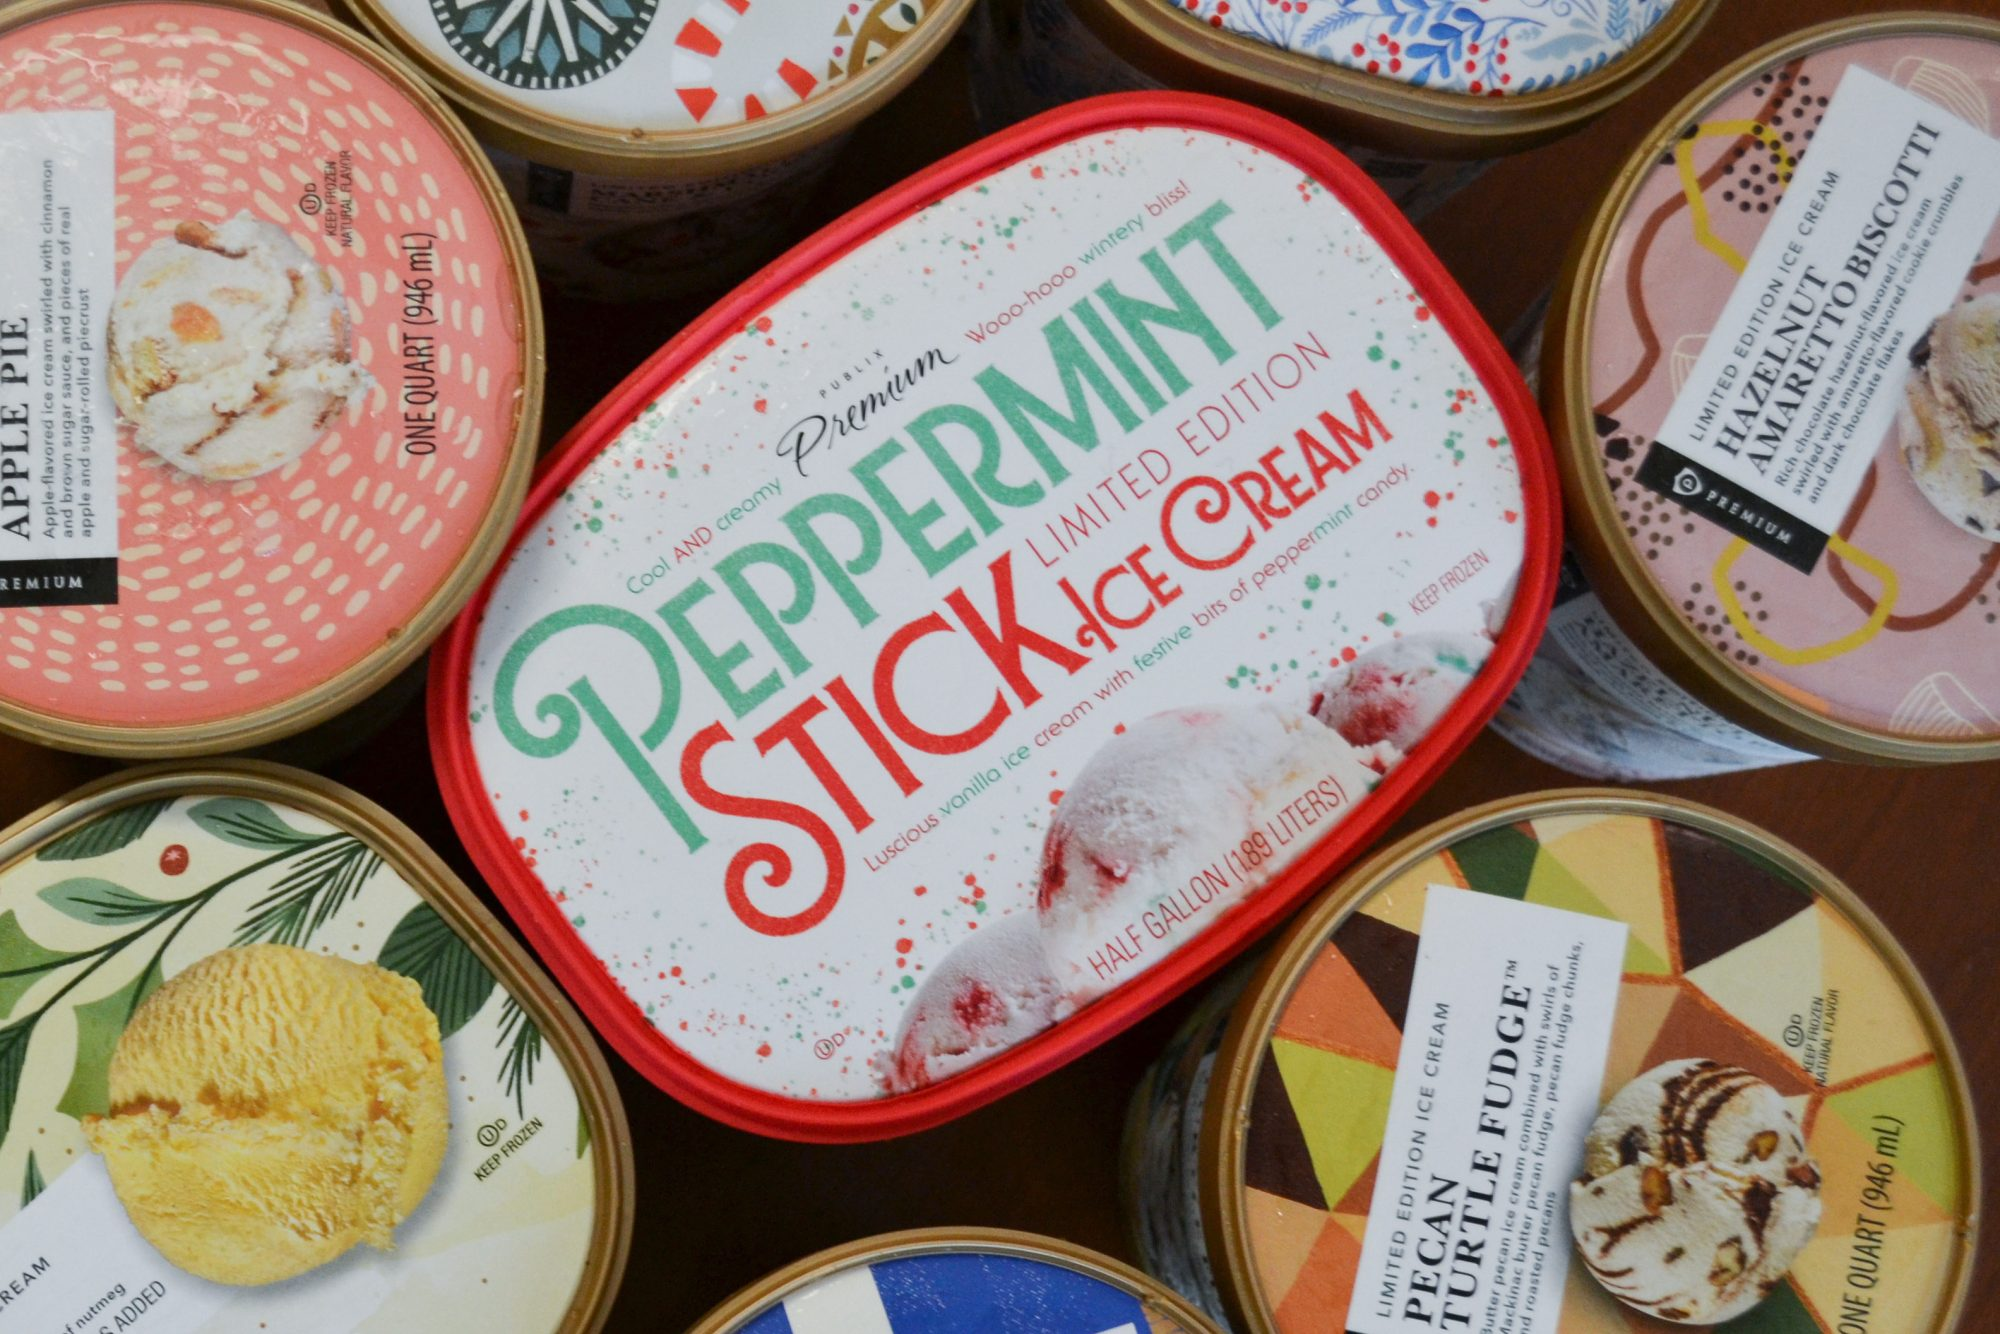 Publix Peppermint Stick Ice Cream